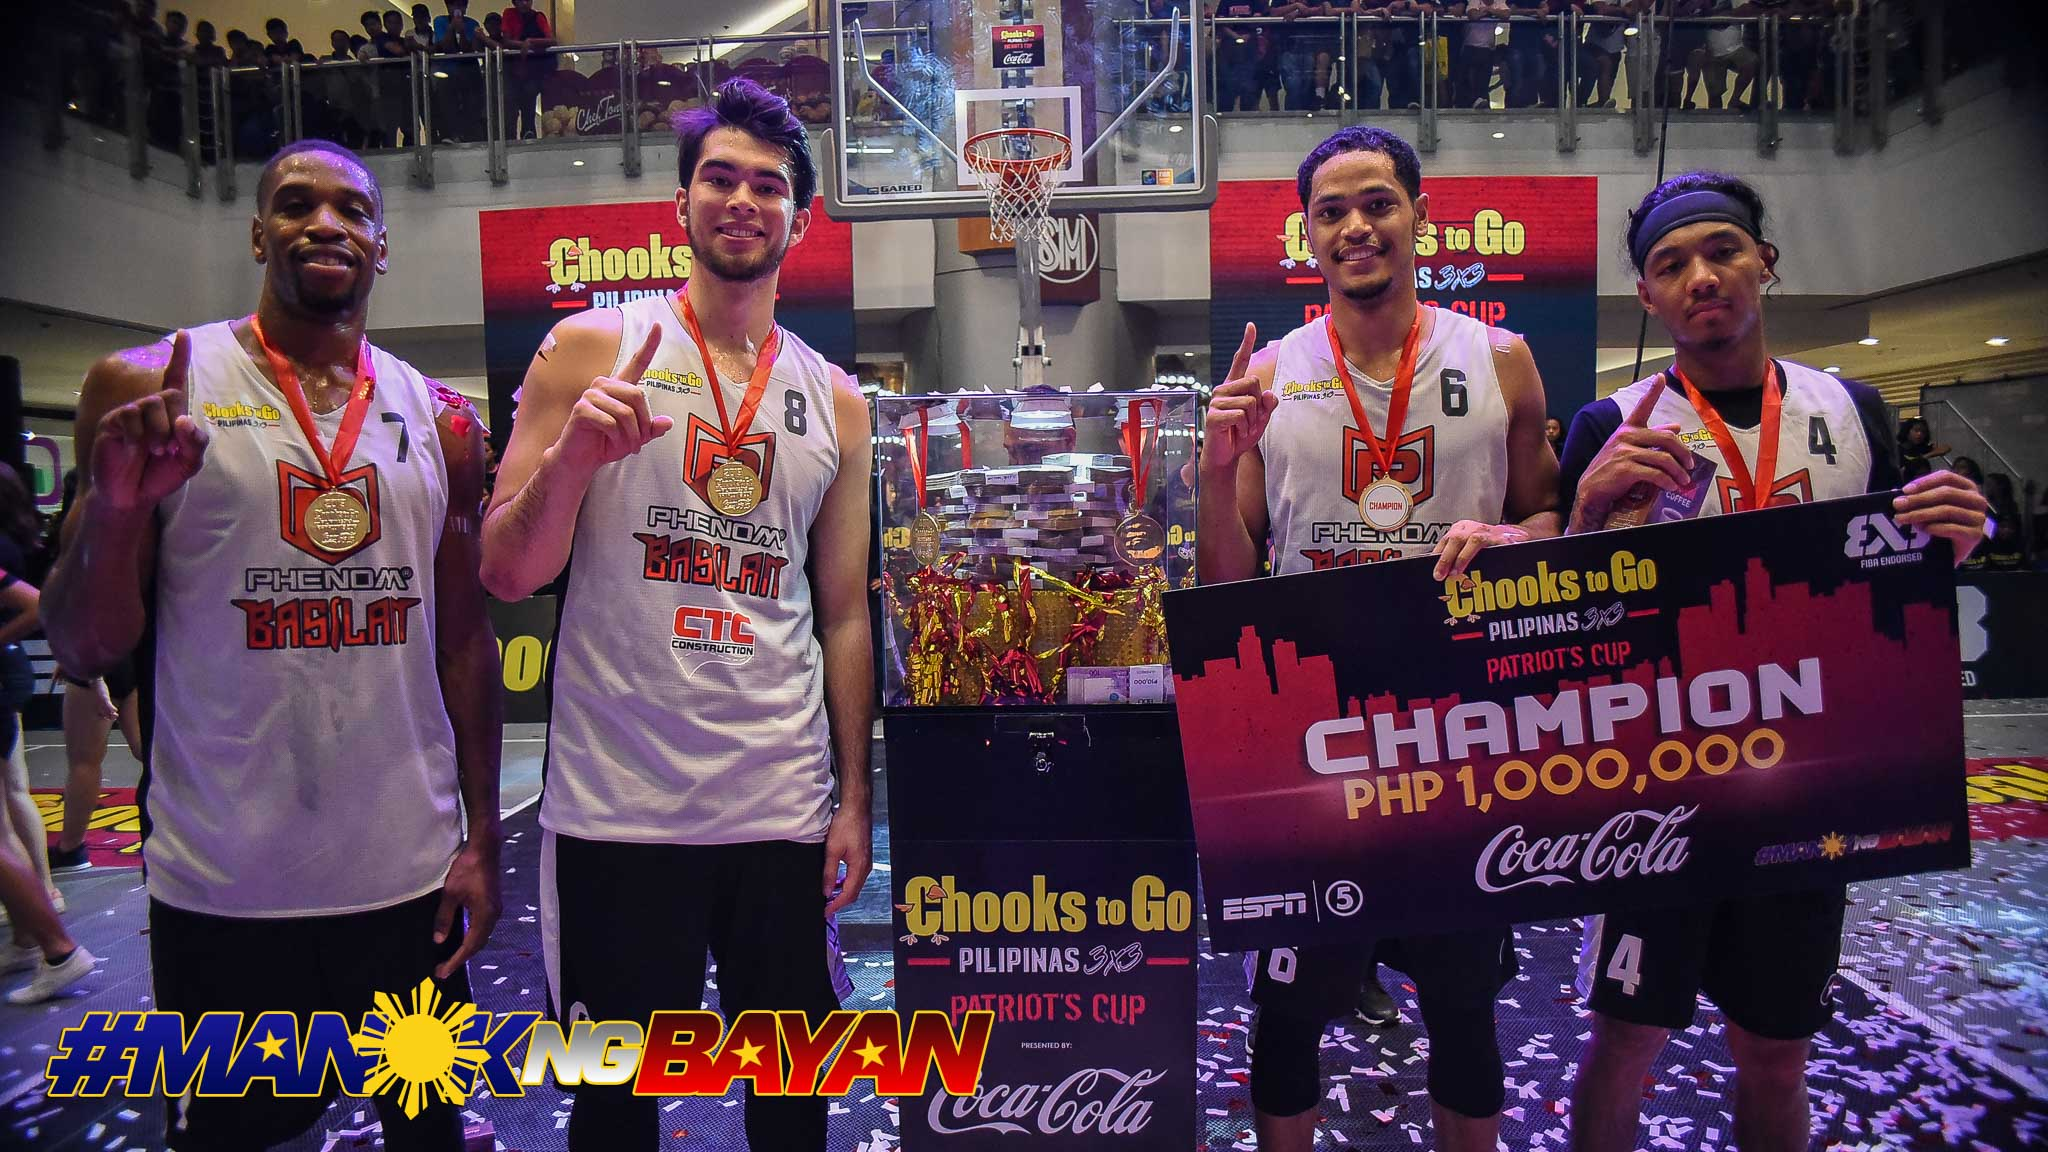 Tiebreaker Times Winning with Basilan means more for Troy Rike 3x3 Basketball Chooks-to-Go Pilipinas 3x3 News  Troy Rike Basilan Steel 2019 Chooks-to-Go Pilipinas 3x3 Season 2019 Chooks-to-Go Pilipinas 3x3 Patriots Cup